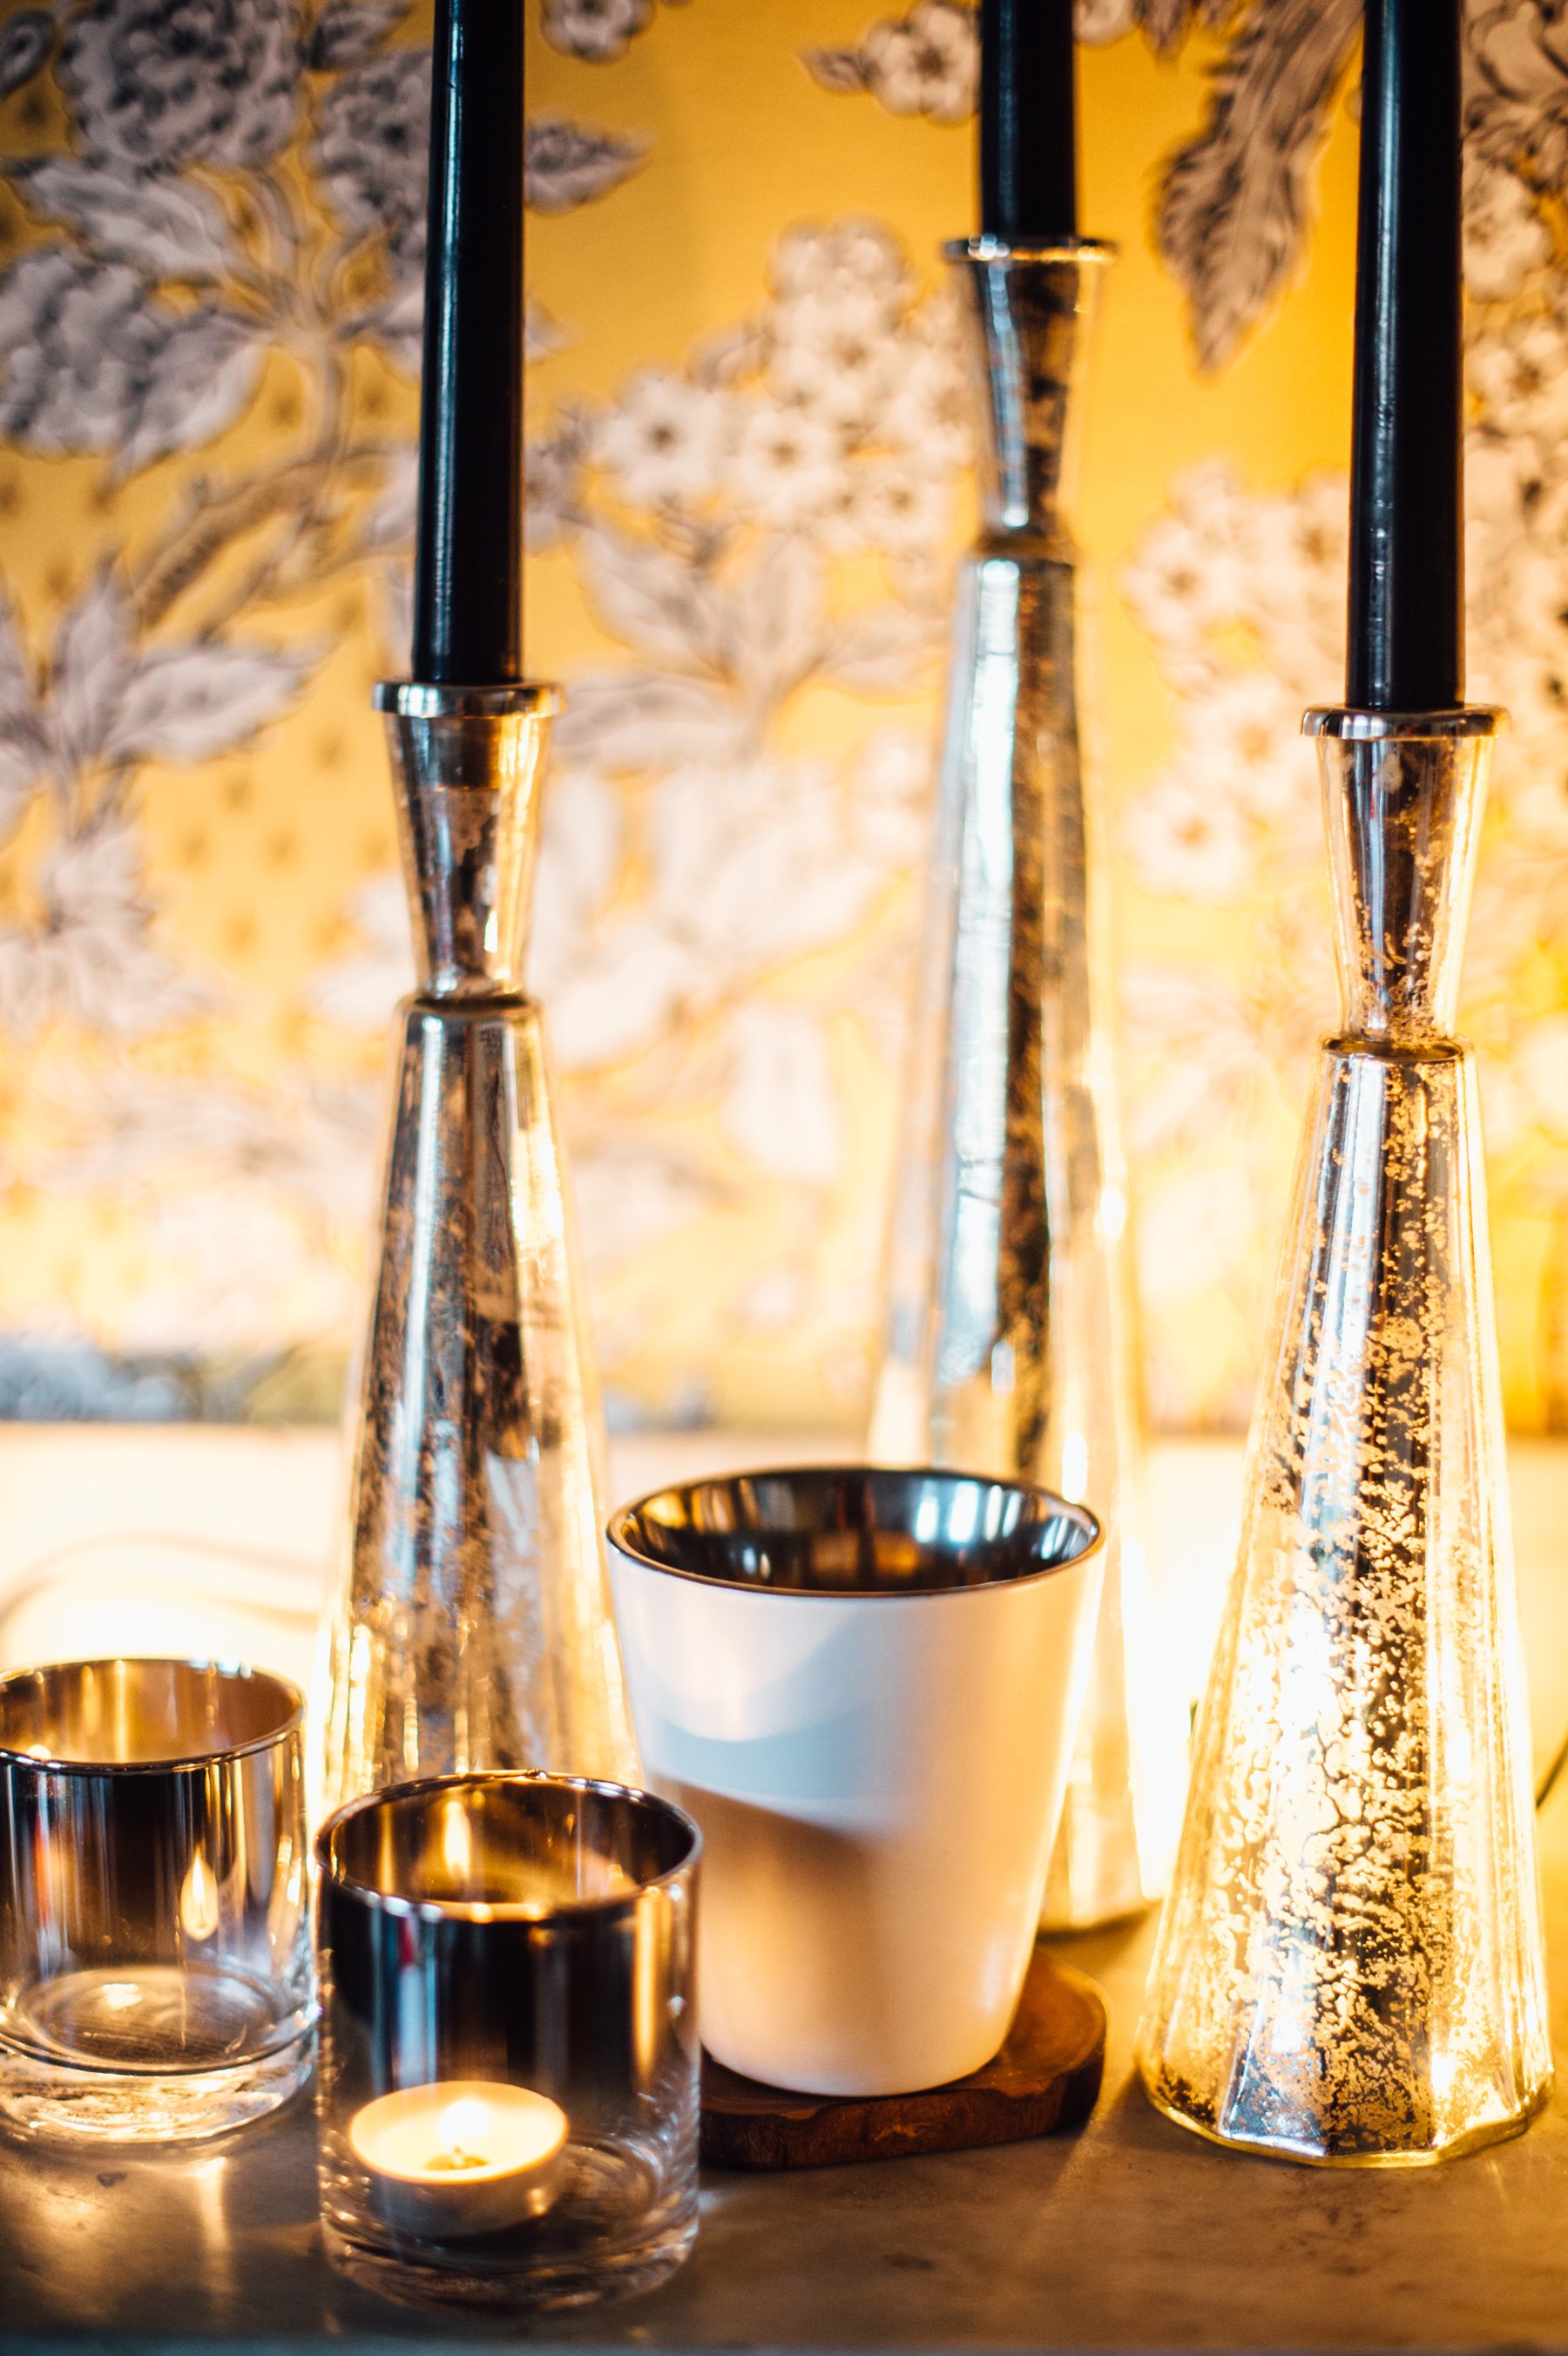 Black candles looked so chic against the black detail in the wallpaper. Gold and rose gold candles disappeared. The glass votives & candle holders are from West Elm, and the white silver-lined votive in the middle is from Hudson. Olivewood coasters is also from West Elm.